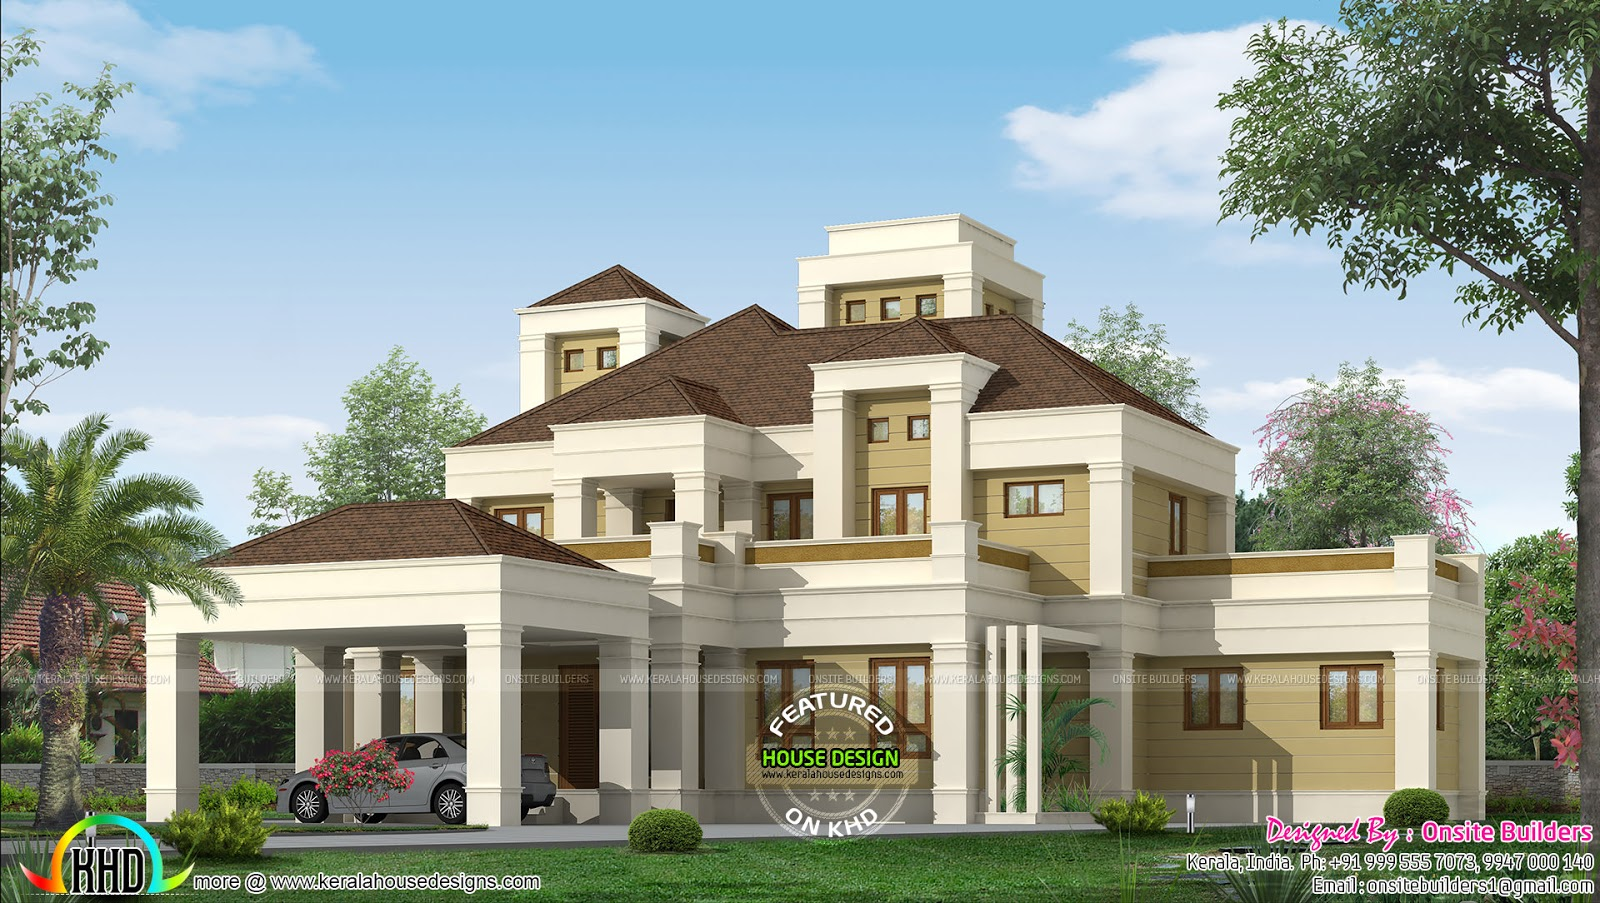 Elegant colonial home plan kerala home design and floor Colonial home builders